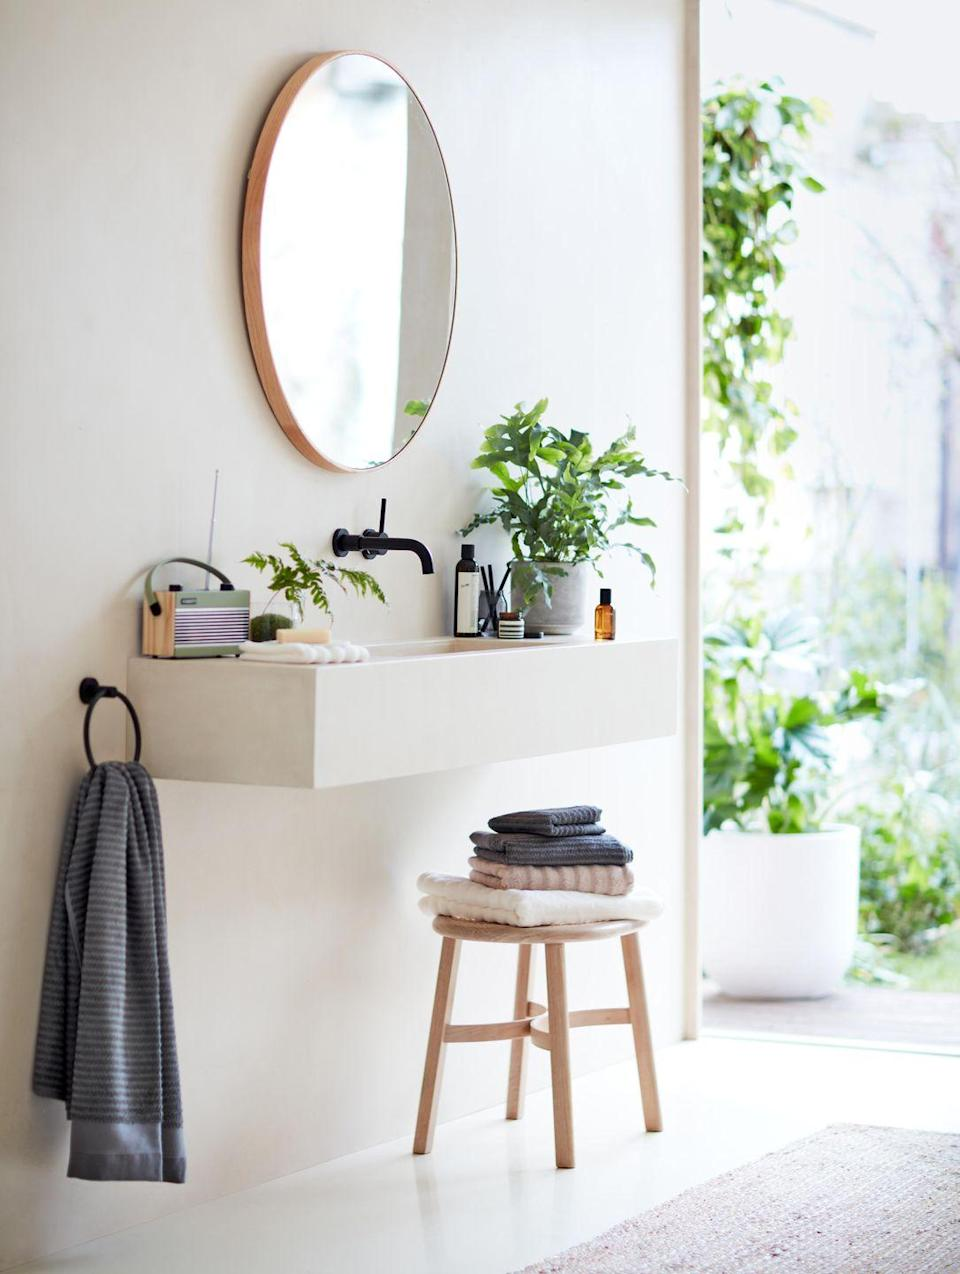 """<p>Inspired by Scandi style, you'll find gorgeous bathroom mirrors, wooden stools, plush towels, air-purifying plants and lovely soaps, too. </p><p><a class=""""link rapid-noclick-resp"""" href=""""https://go.redirectingat.com?id=127X1599956&url=https%3A%2F%2Fwww.johnlewis.com%2Fbrowse%2Fhome-garden%2Fnew-in-home%2F_%2FN-7opk&sref=https%3A%2F%2Fwww.housebeautiful.com%2Fuk%2Flifestyle%2Fshopping%2Fg35369005%2Fjohn-lewis-partners-homeware-spring-summer%2F"""" rel=""""nofollow noopener"""" target=""""_blank"""" data-ylk=""""slk:SHOP NOW"""">SHOP NOW</a></p>"""